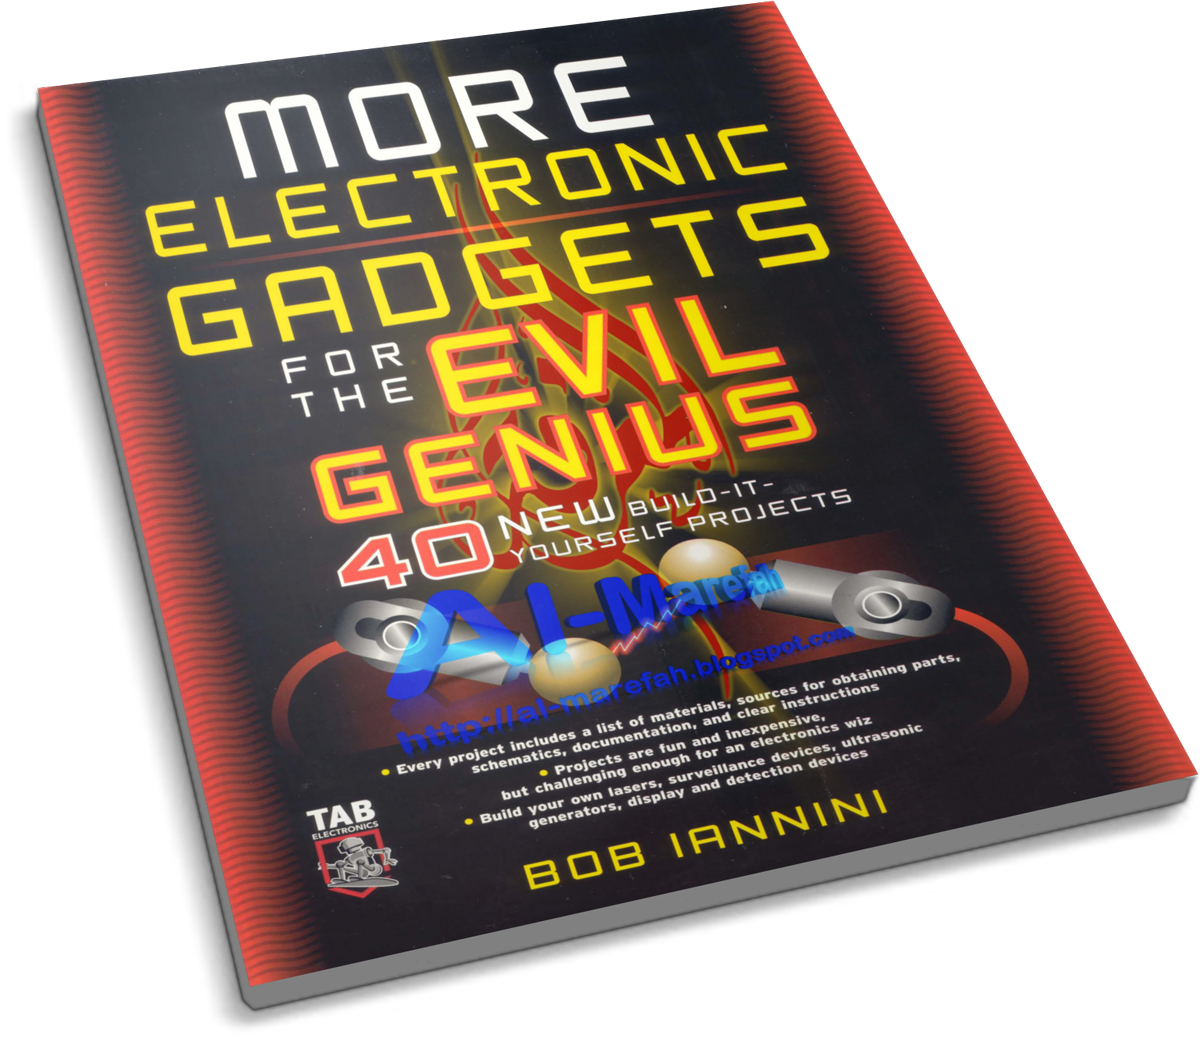 Electronic Gadgets for the Evil Genius 40 NEW Build-it-Yourself